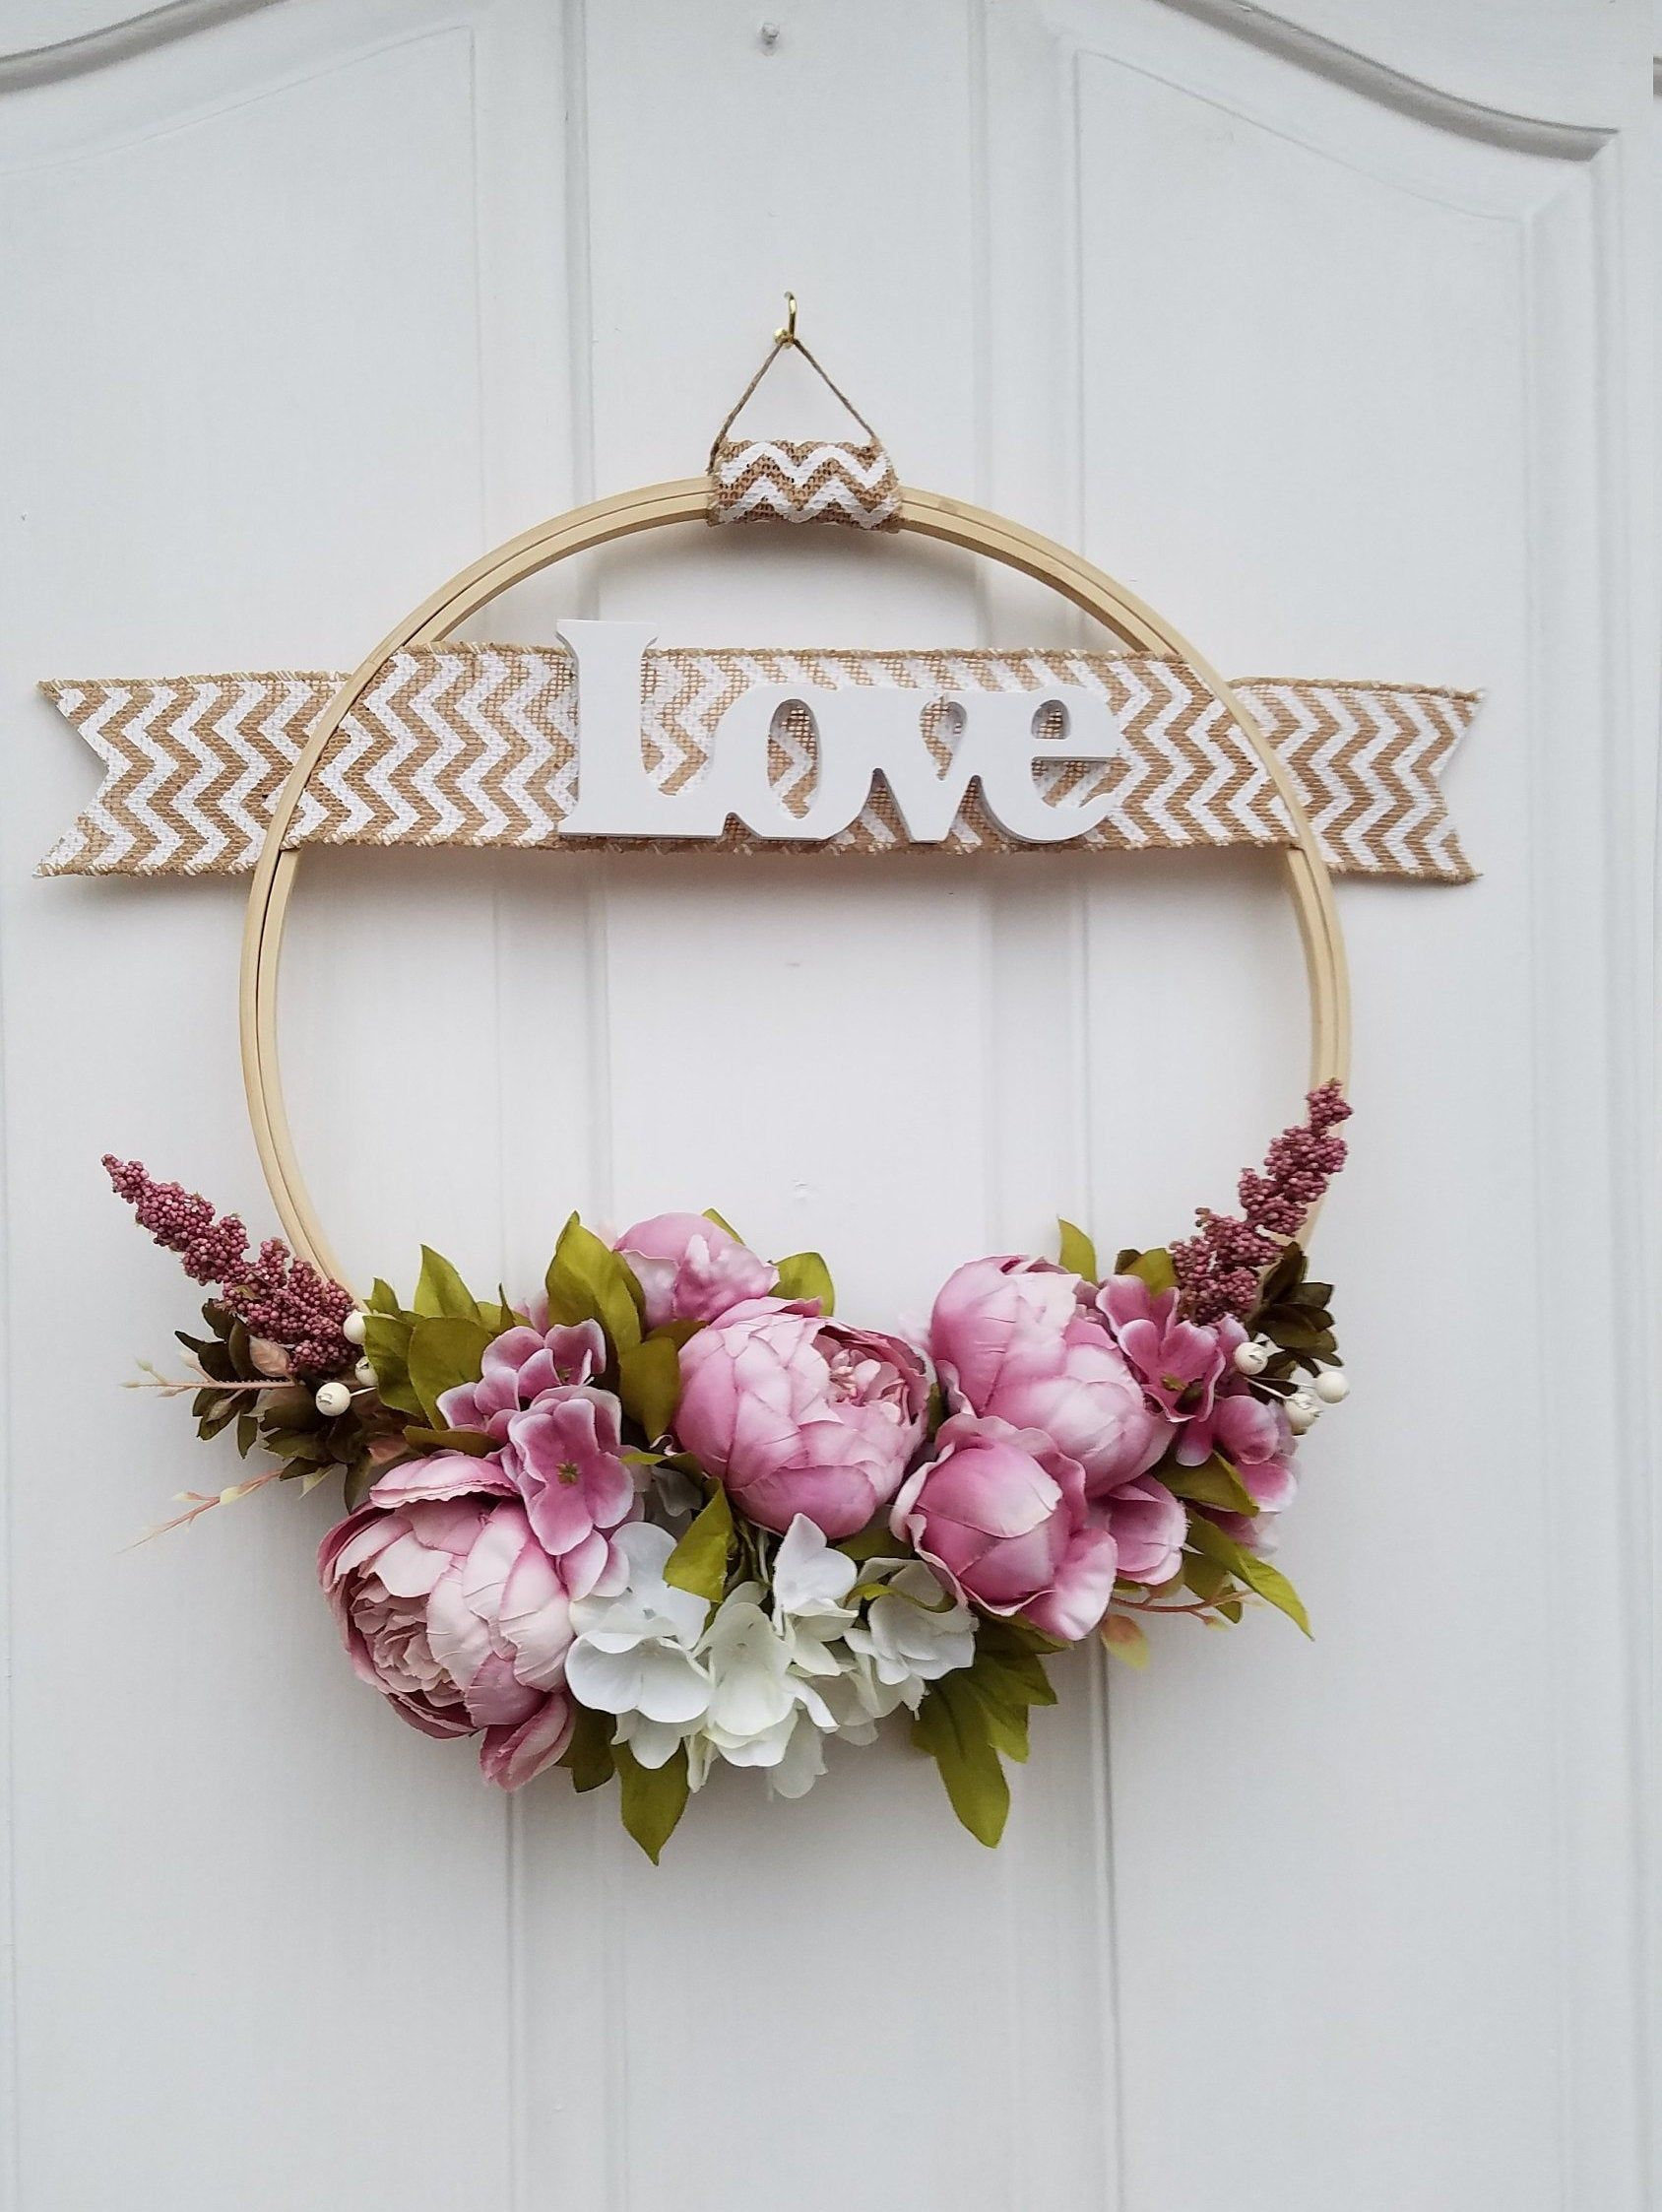 Hoop Wreath With Love Sign Gift For Mom Door Wreath Modern Wall Decor Floral Hoops Etsy Wreaths Valentine Wreath